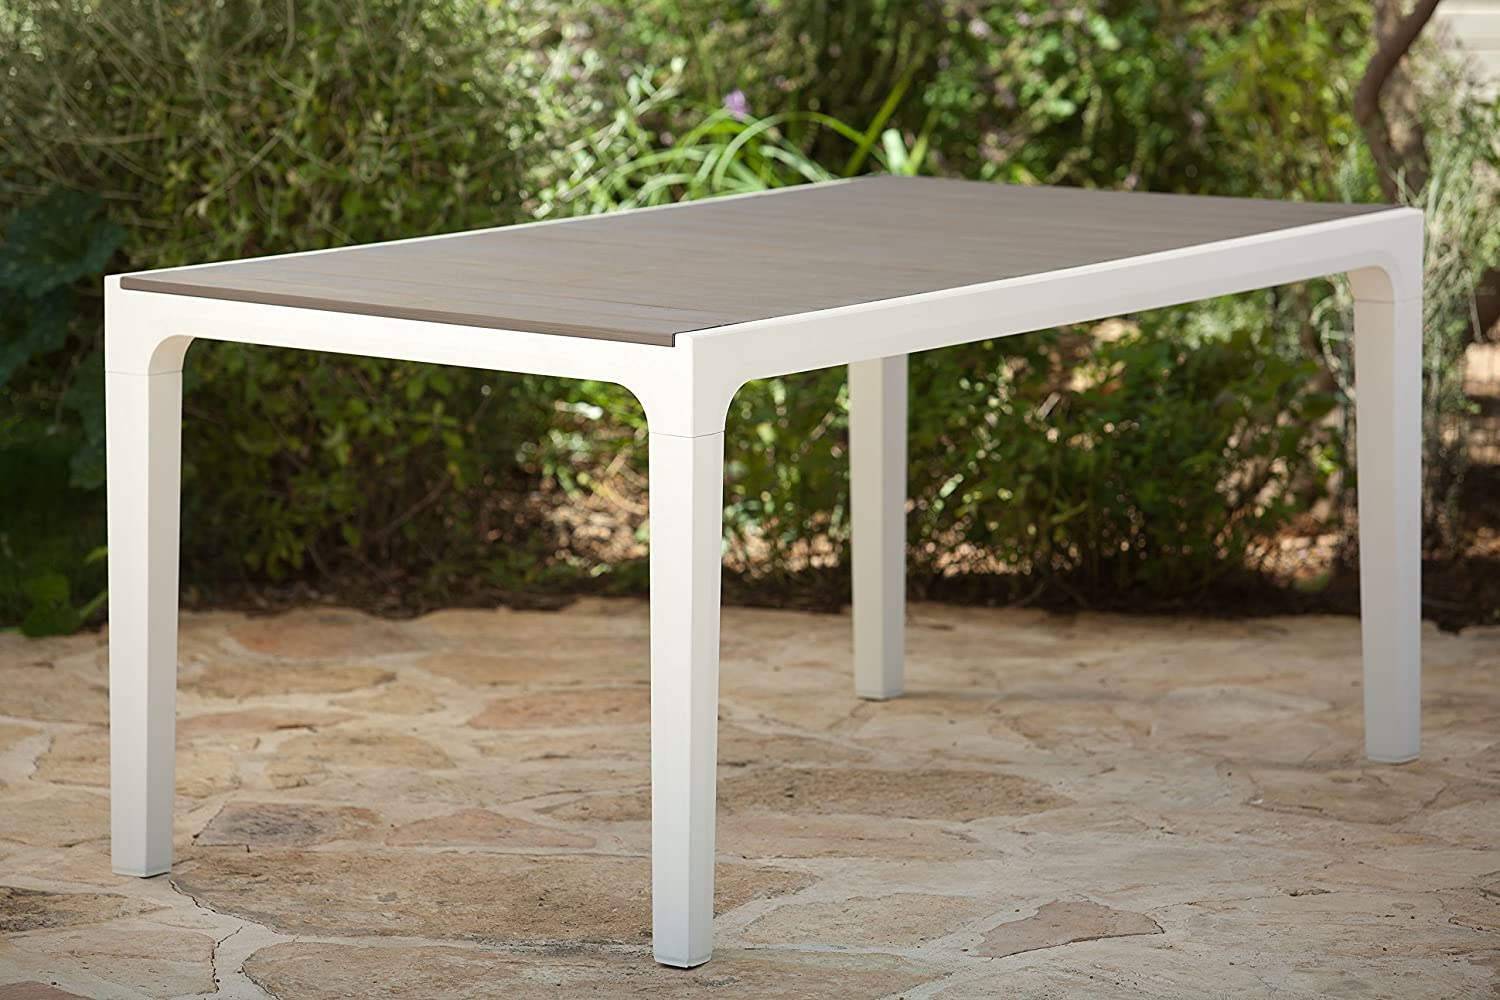 Amazon.com : Keter Harmony Indoor/Outdoor Patio Dining Table with ...